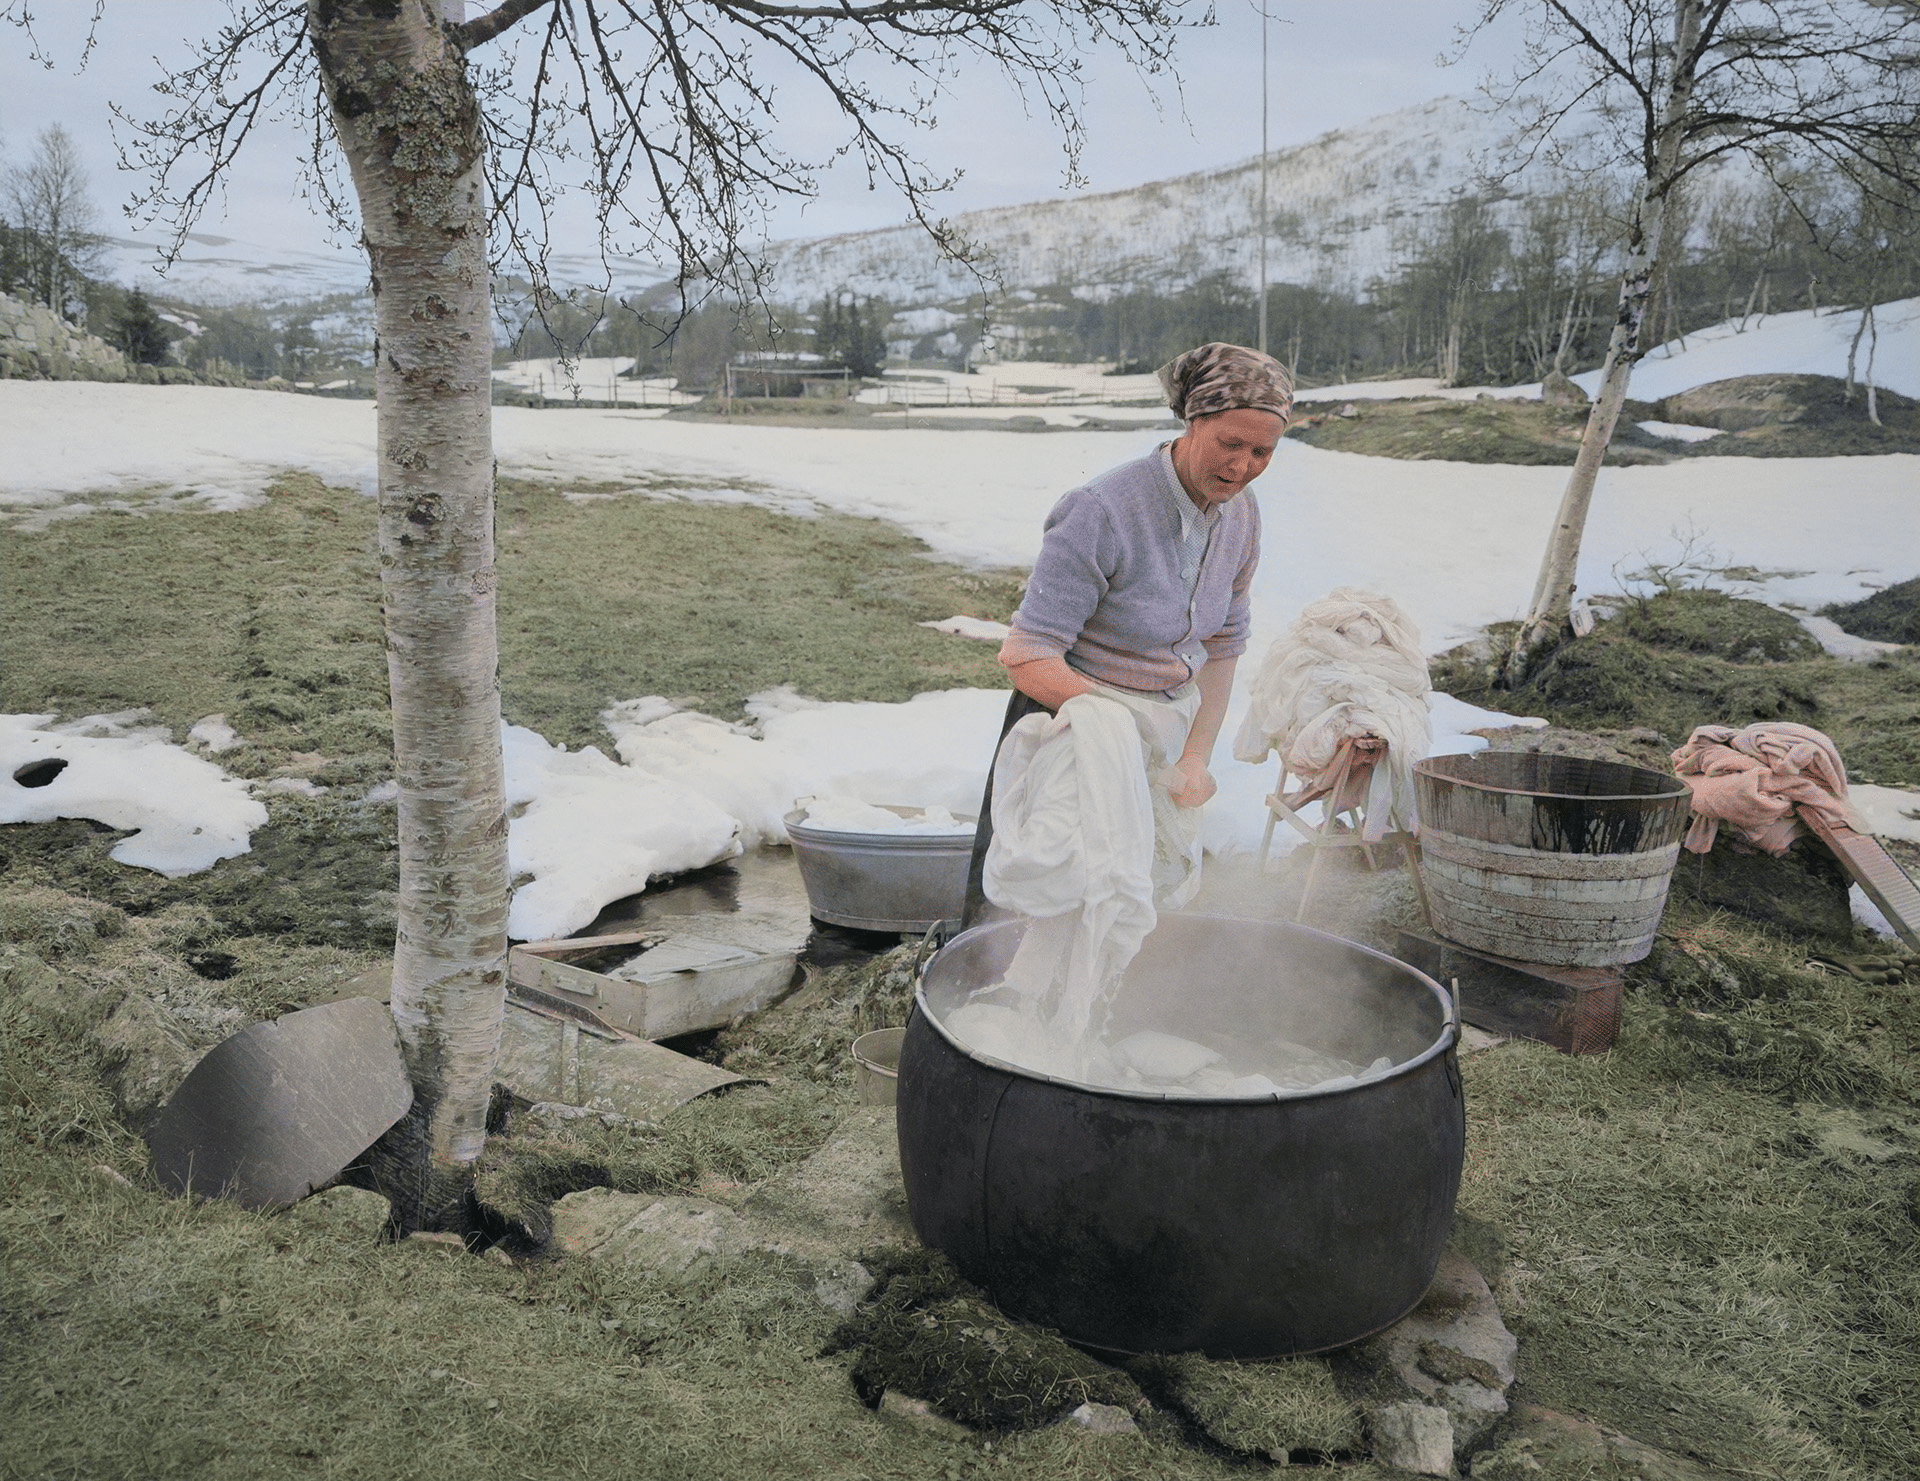 Doing laundry by the creek - in boiling water on the fire. | Photo: Arnulf Husmo - Mittet & Co. AS DeOldify cc pdm.